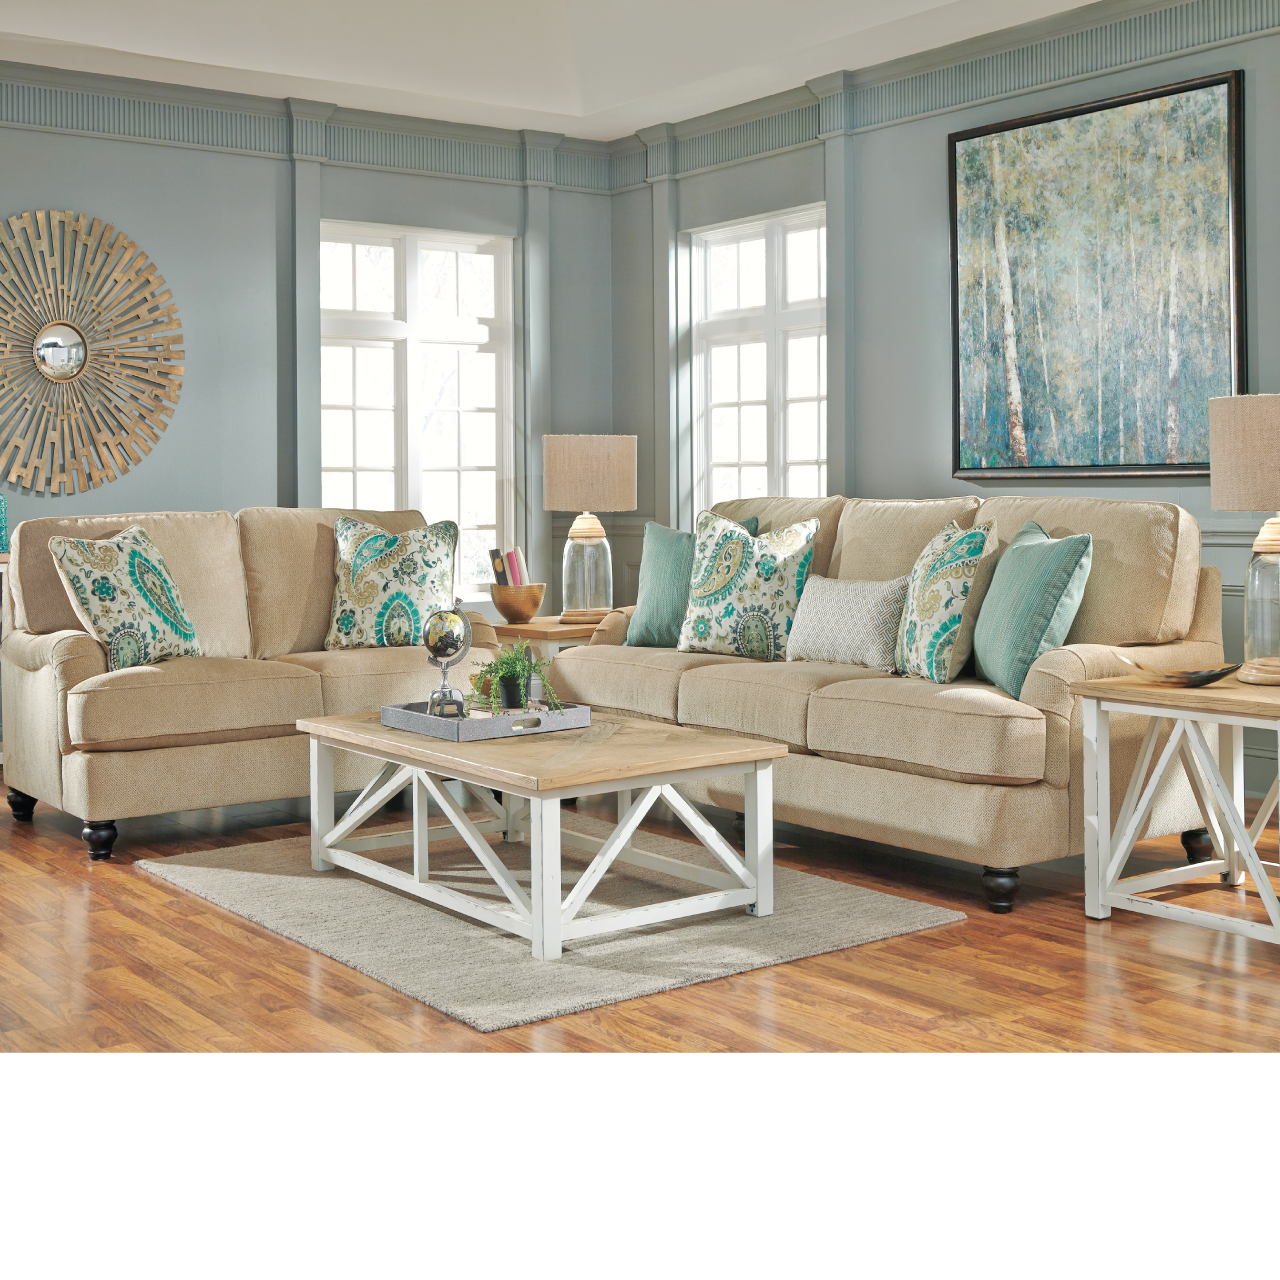 Coastal Living Room Ideas Lochian Sofa By Ashley Furniture At Kensington I Love